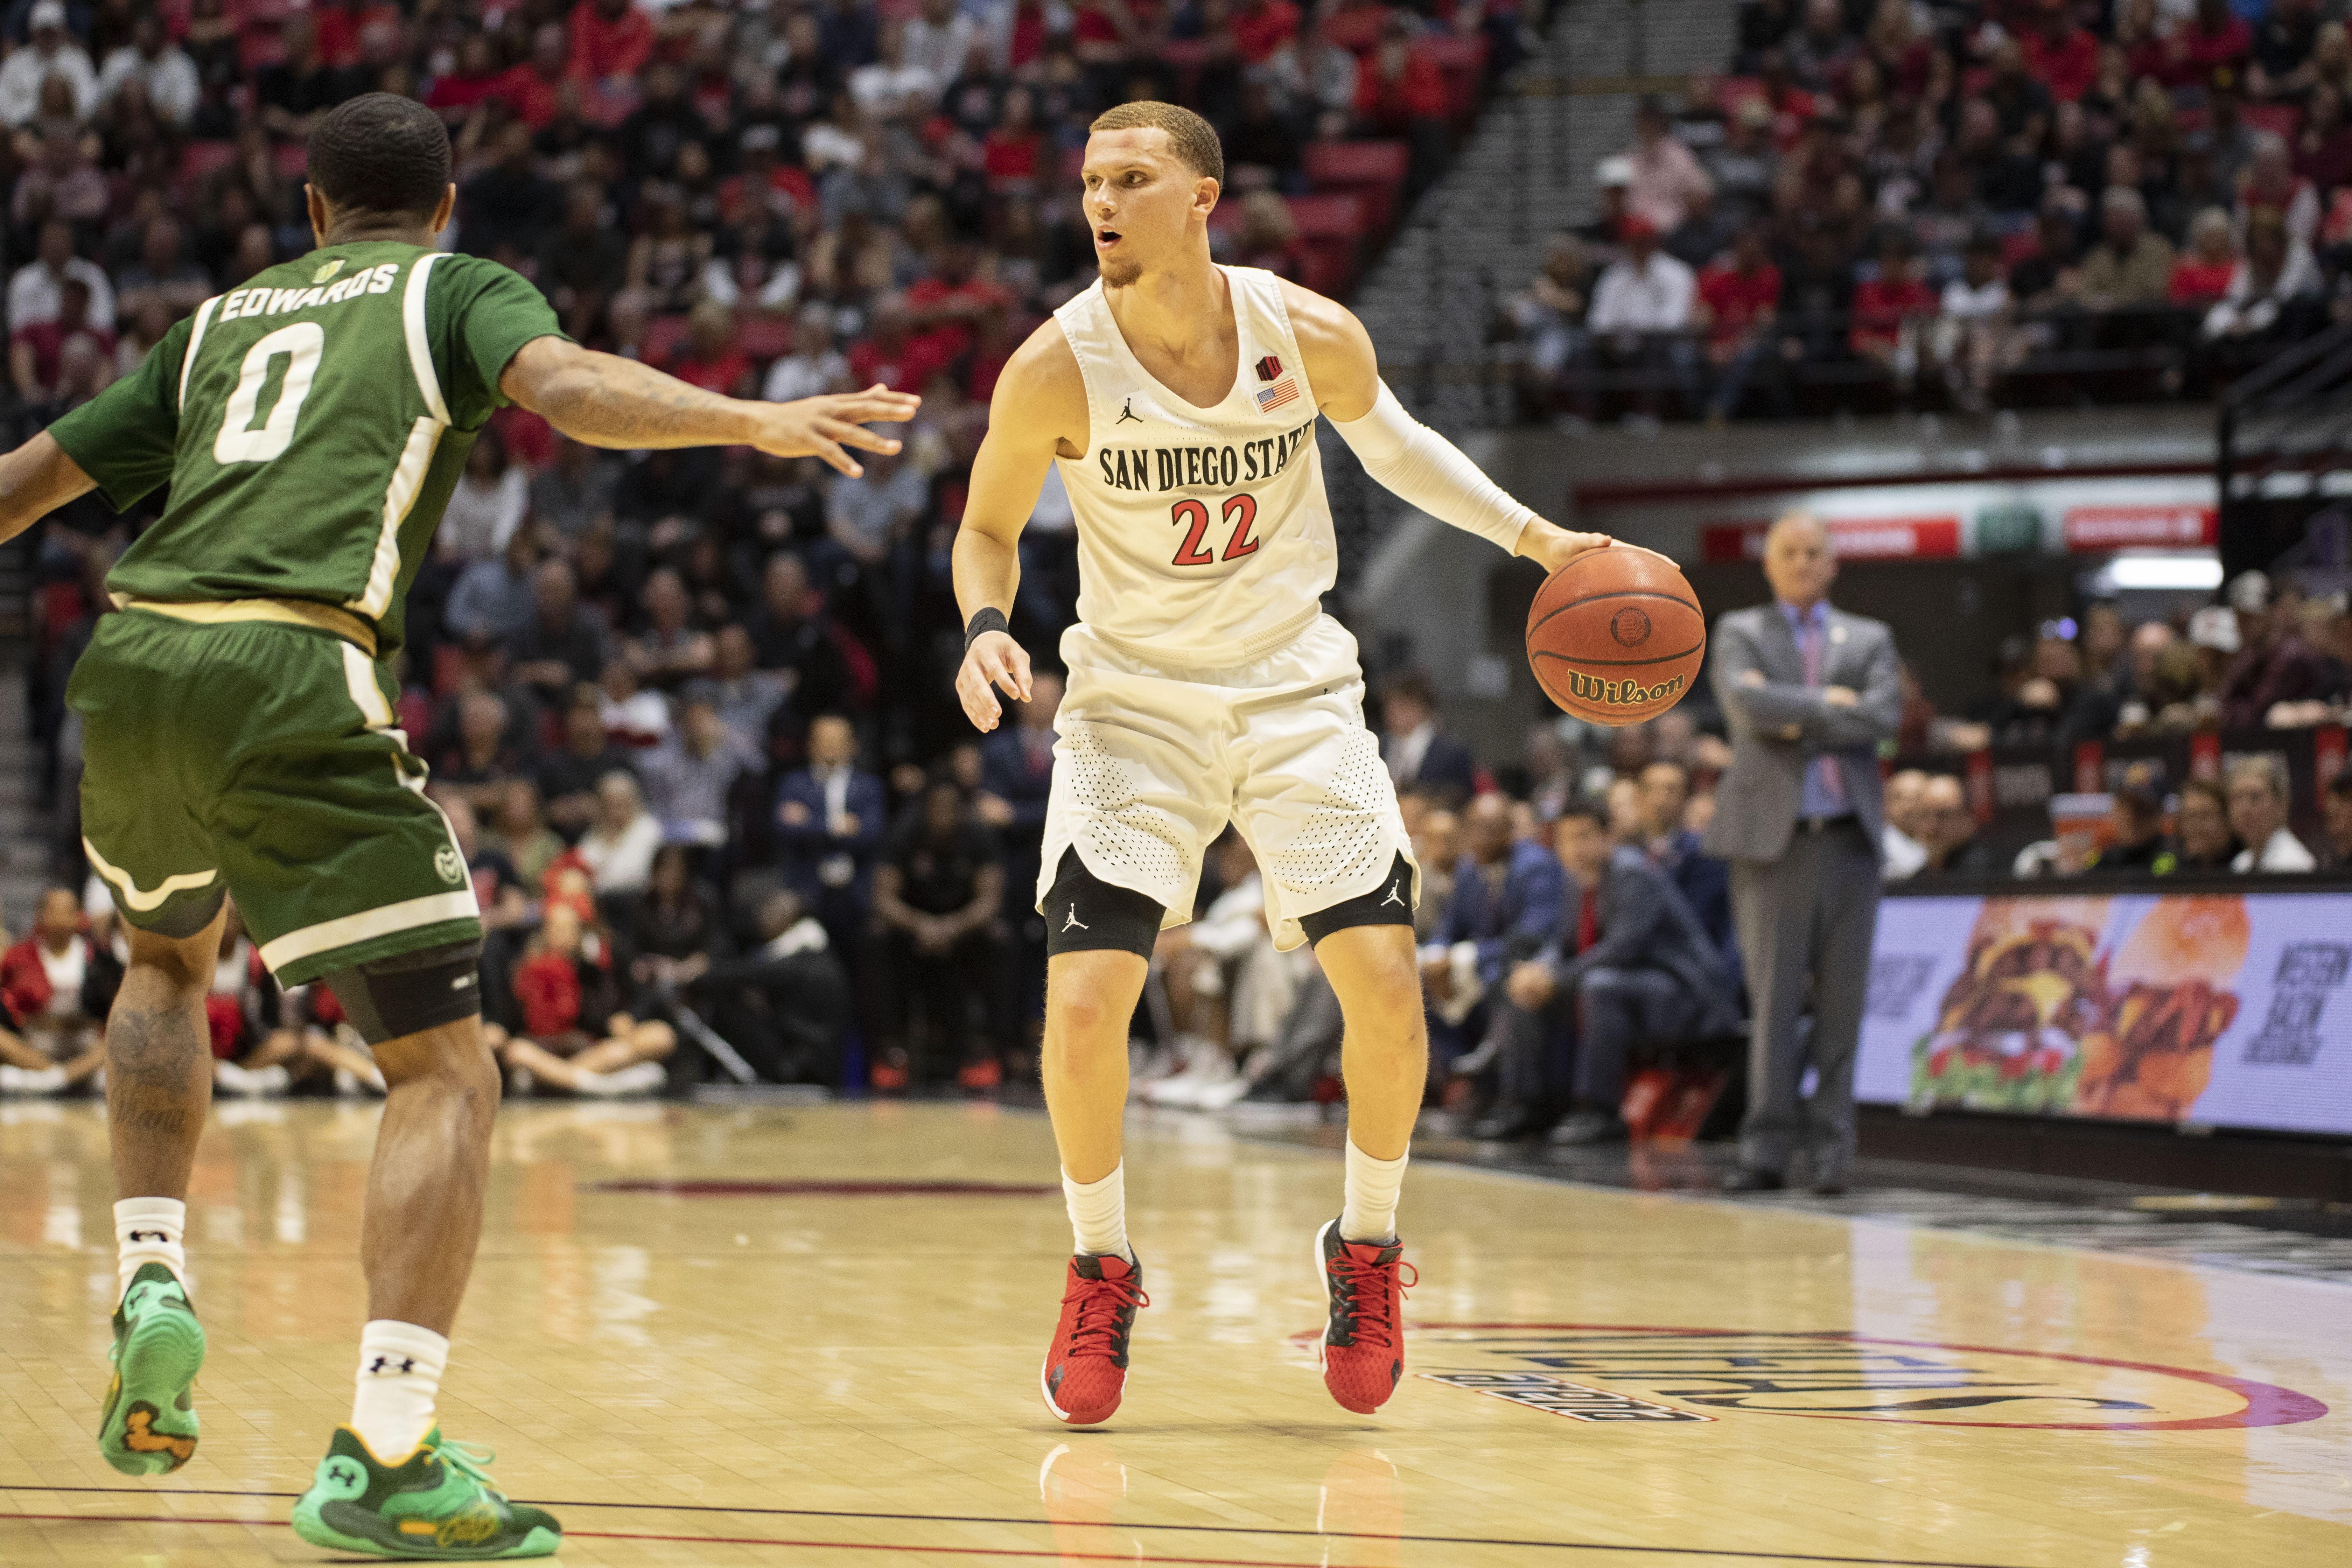 COLLEGE BASKETBALL: FEB 25 Colorado State at San Diego State